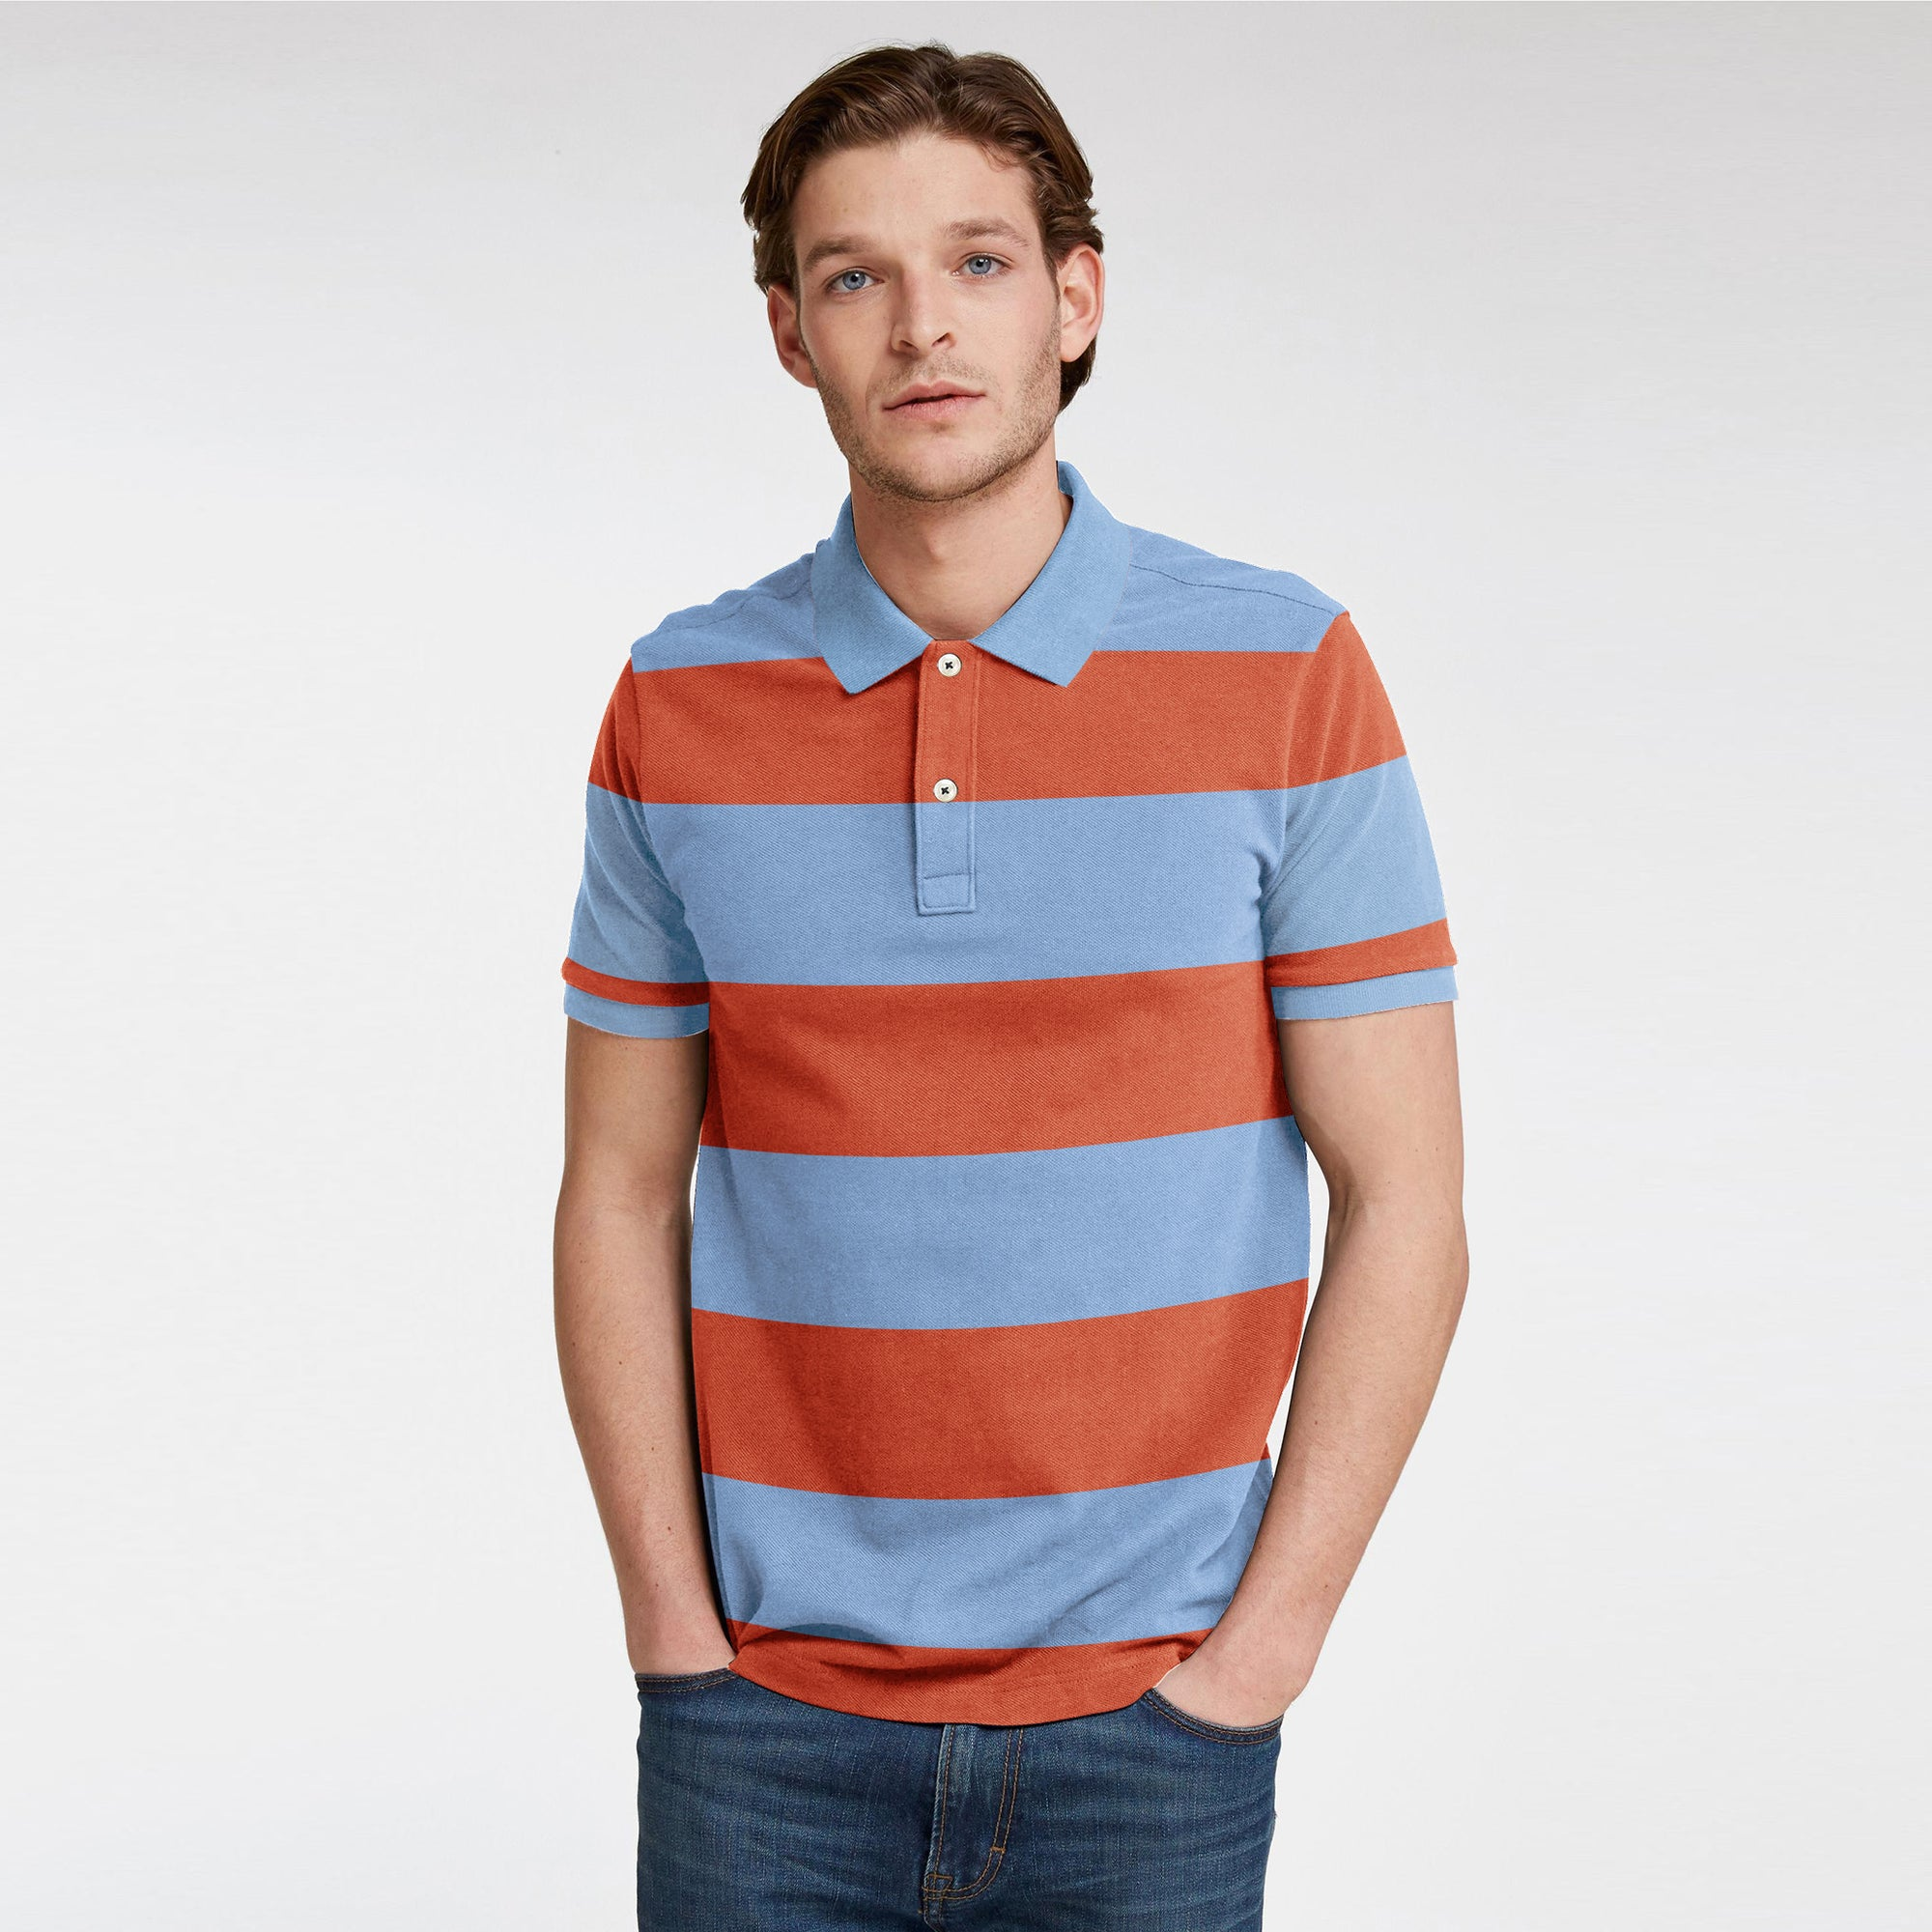 brandsego - GAP Short Sleeve P.Q Polo Shirt For Men-Sky & Orange Stripe-BE8394